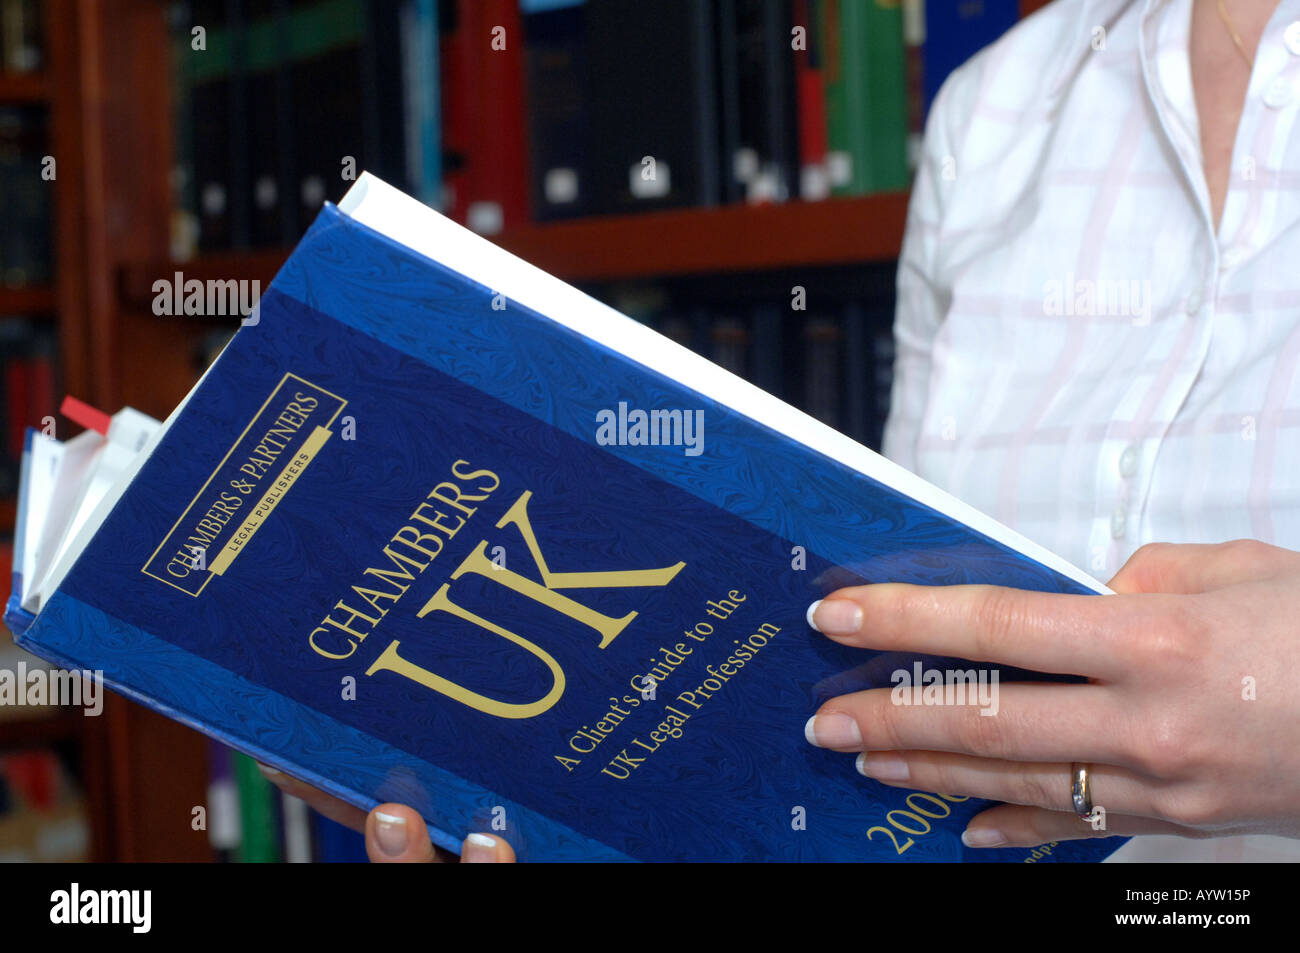 studying law, law,book being read Stock Photo: 17182545 - Alamy